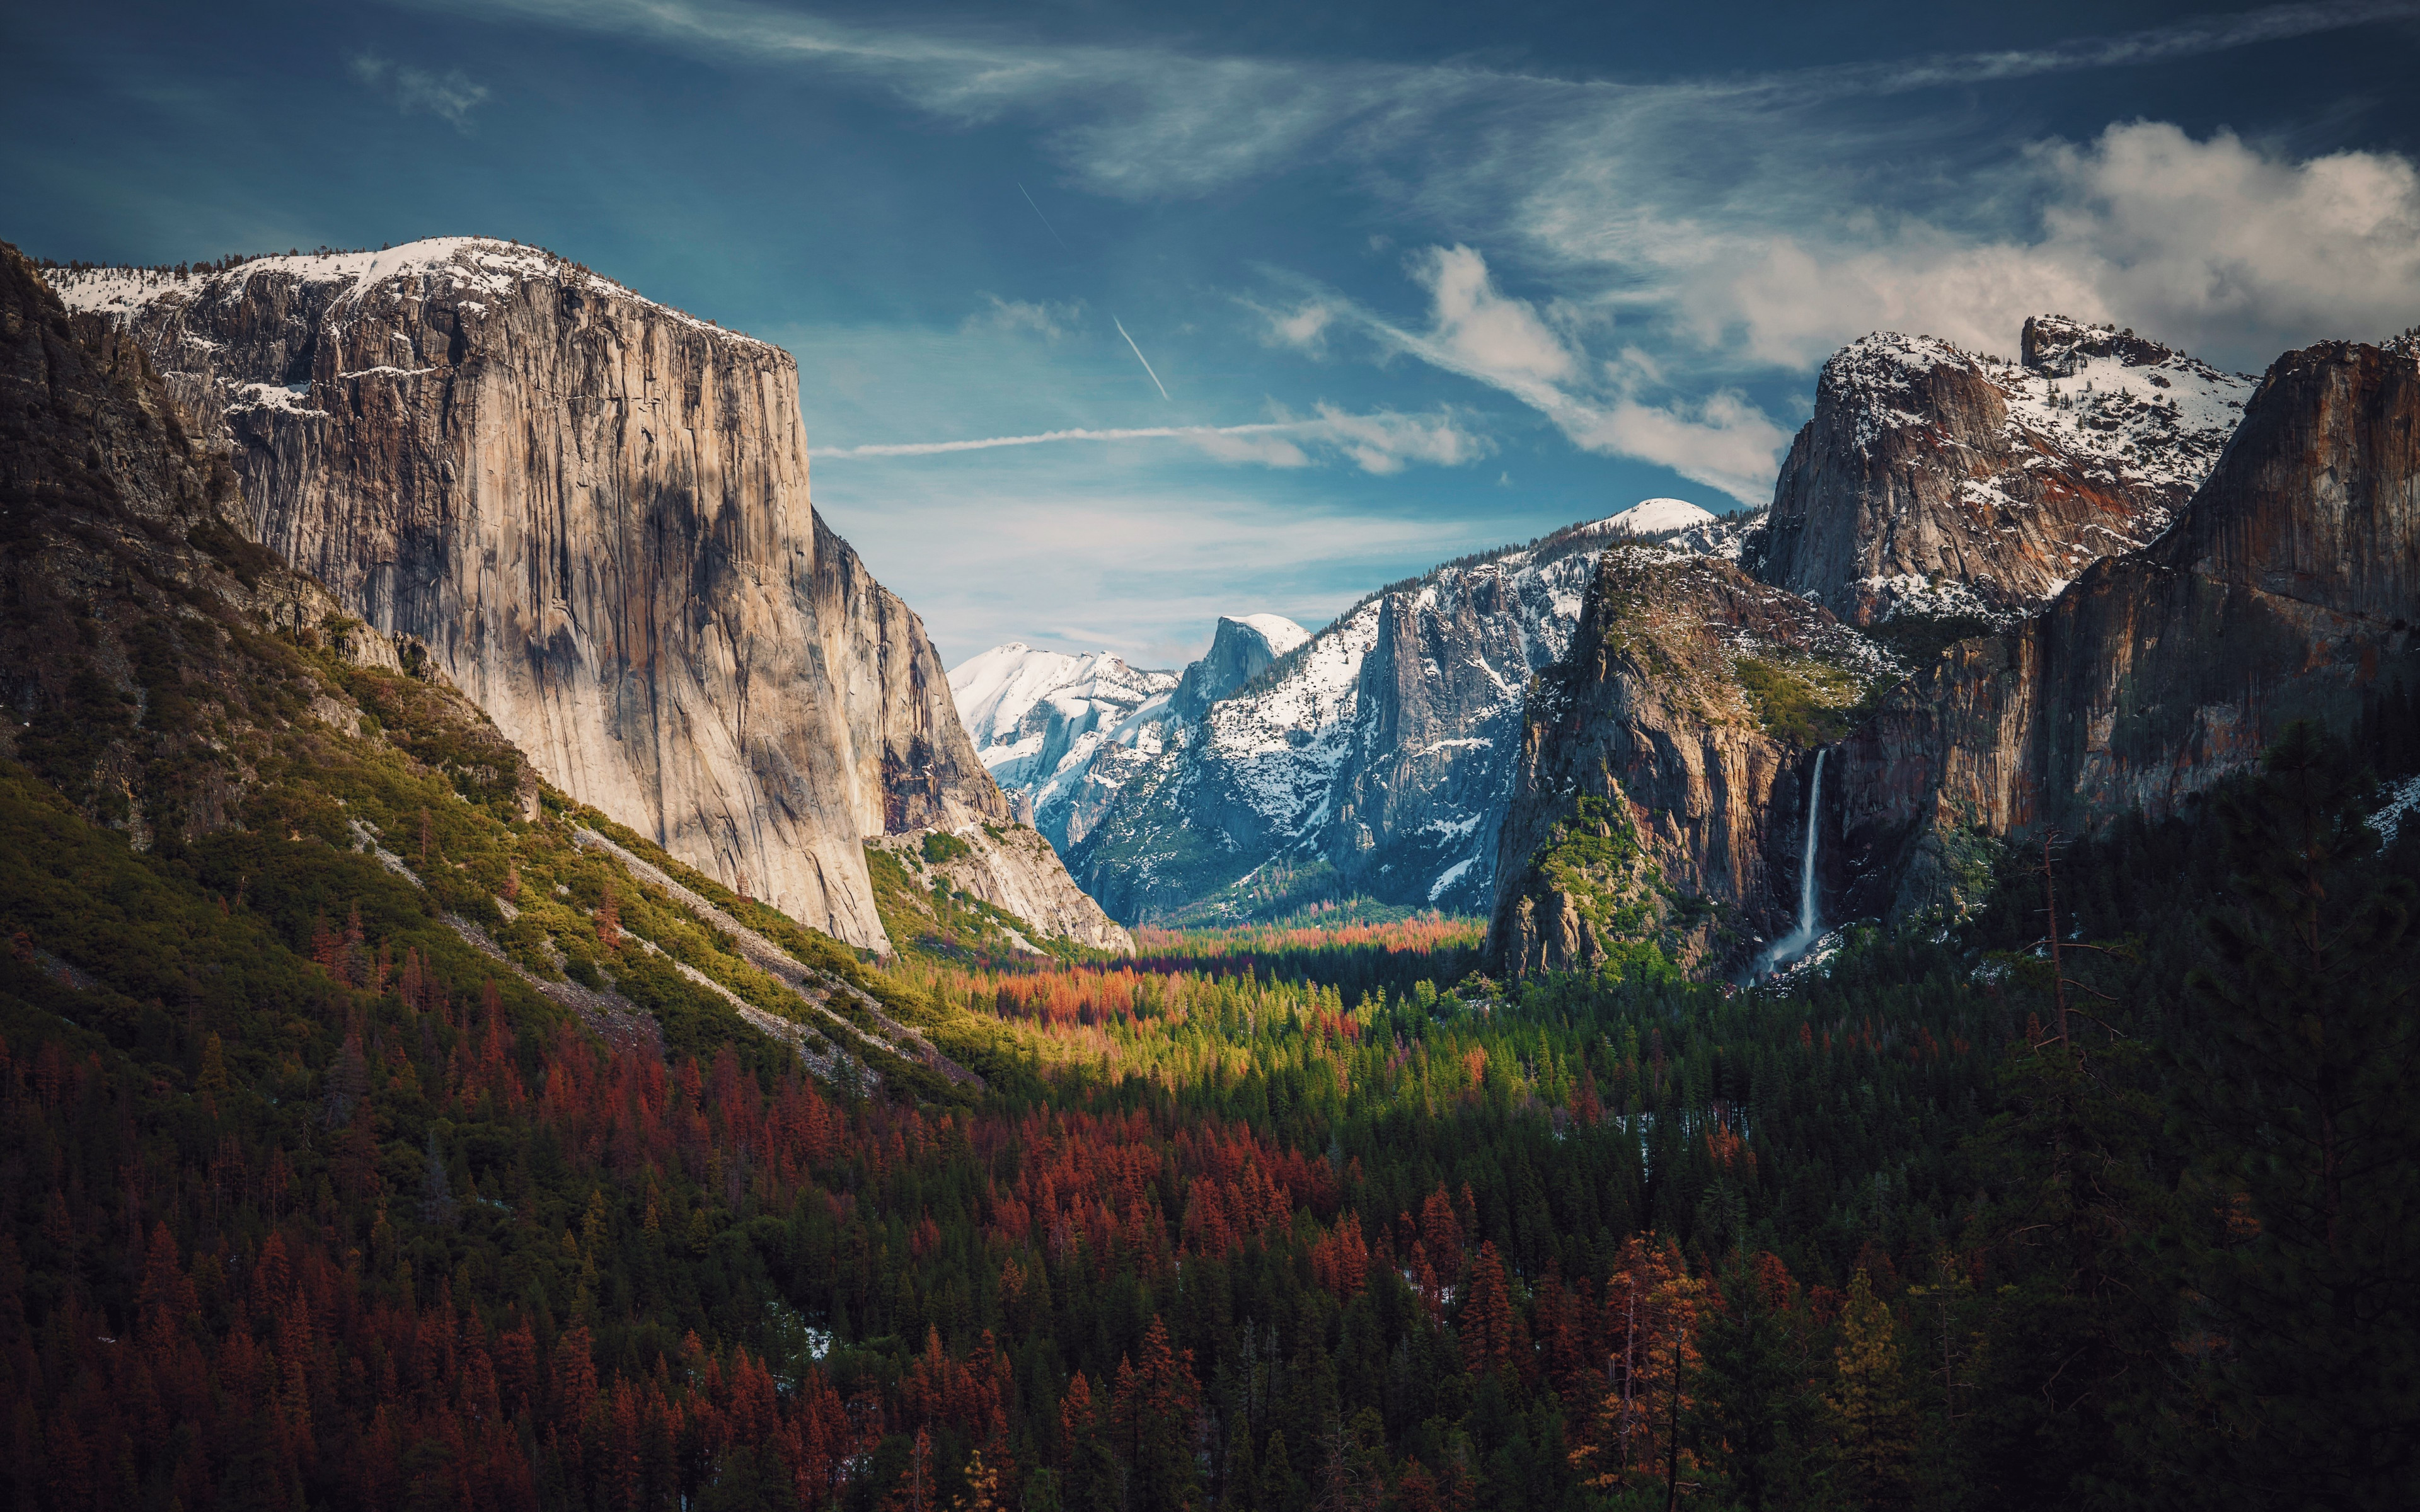 Best View from Yosemite wallpaper 3840x2400